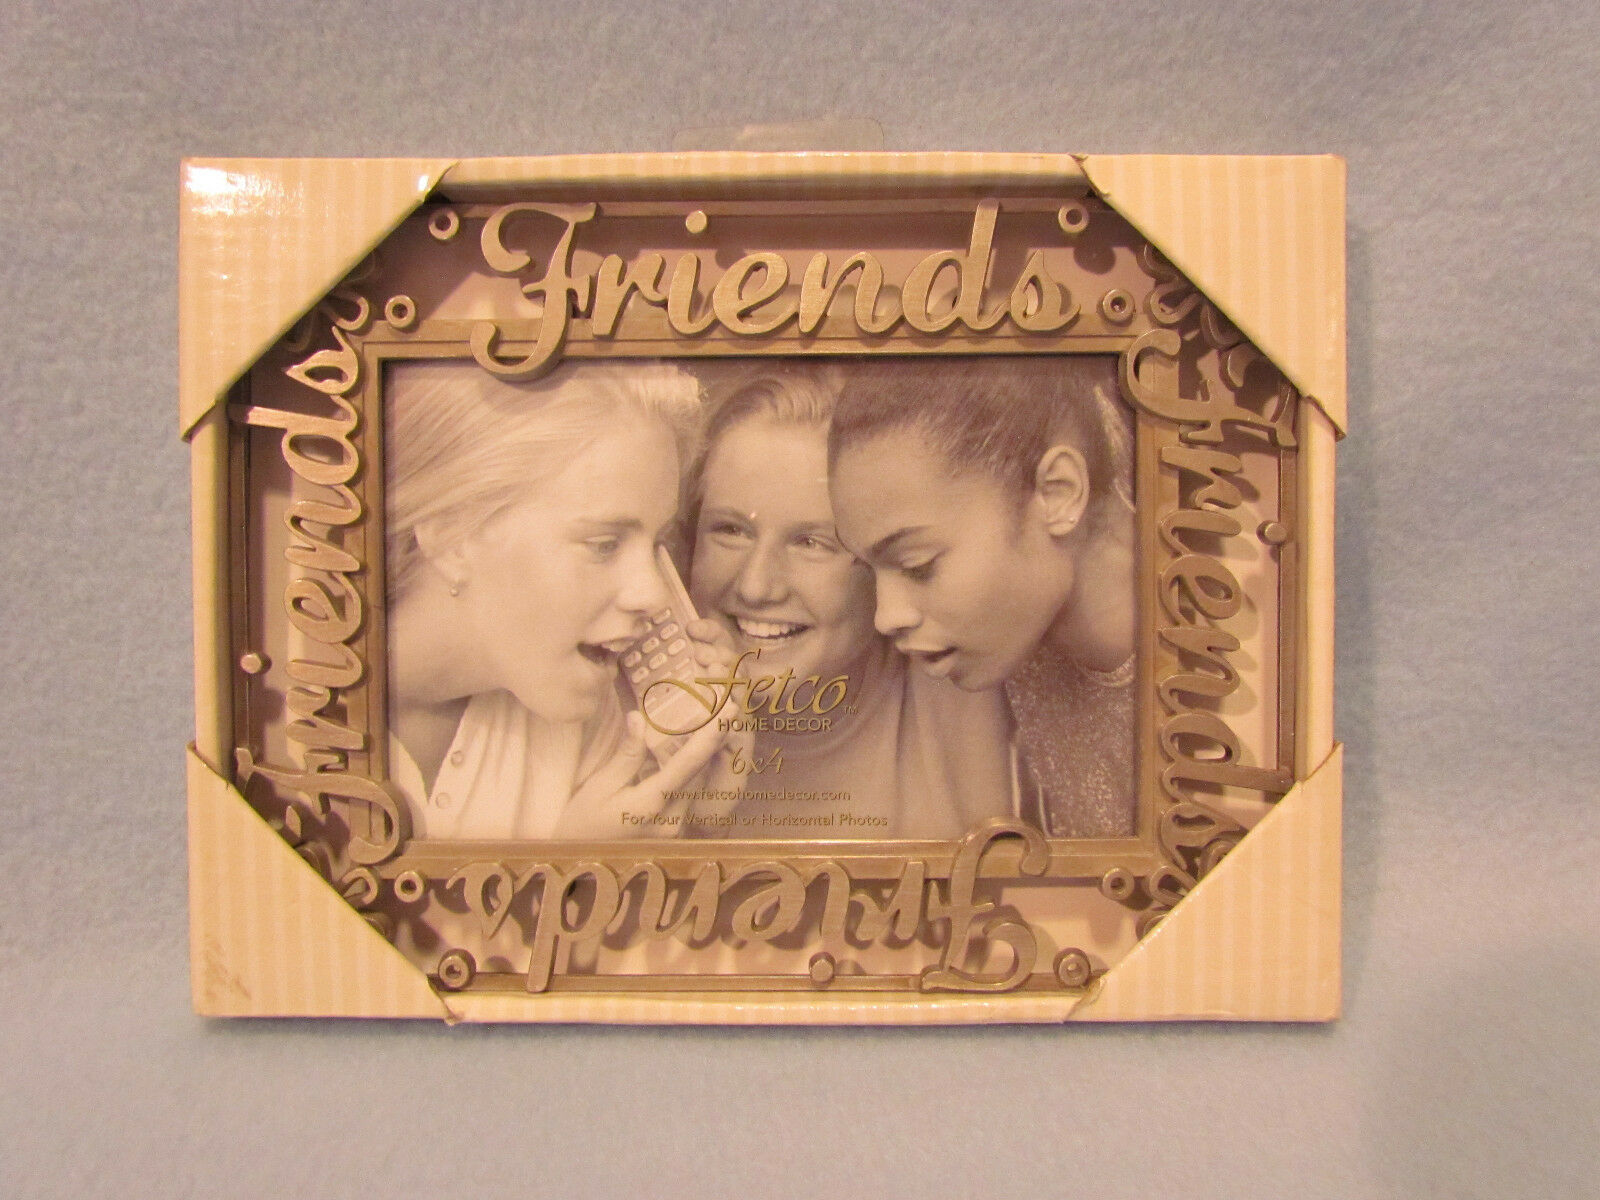 Fetco home decor friends metal pewter 4x6 picture photo frame picture 1 of 3 jeuxipadfo Gallery